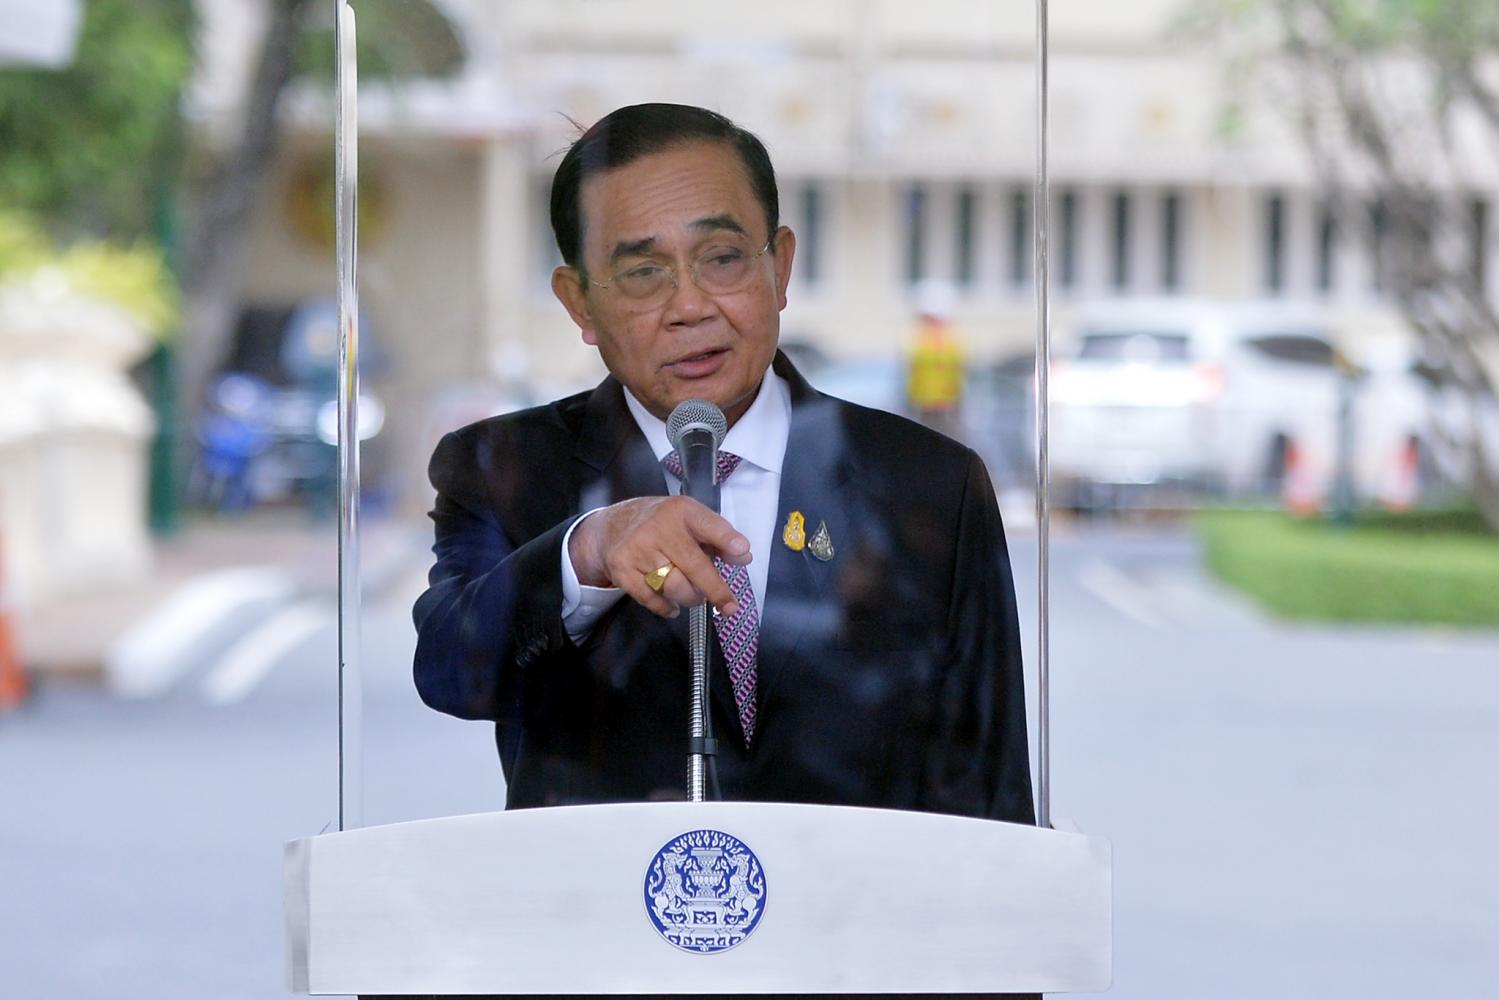 Prime Minister Prayut Chan-o-cha speaks behind a transparent partition during a press conference at Government House on Thursday after officials stepped up disease control measures following the new Covid-19 outbreak. (Government House photo)